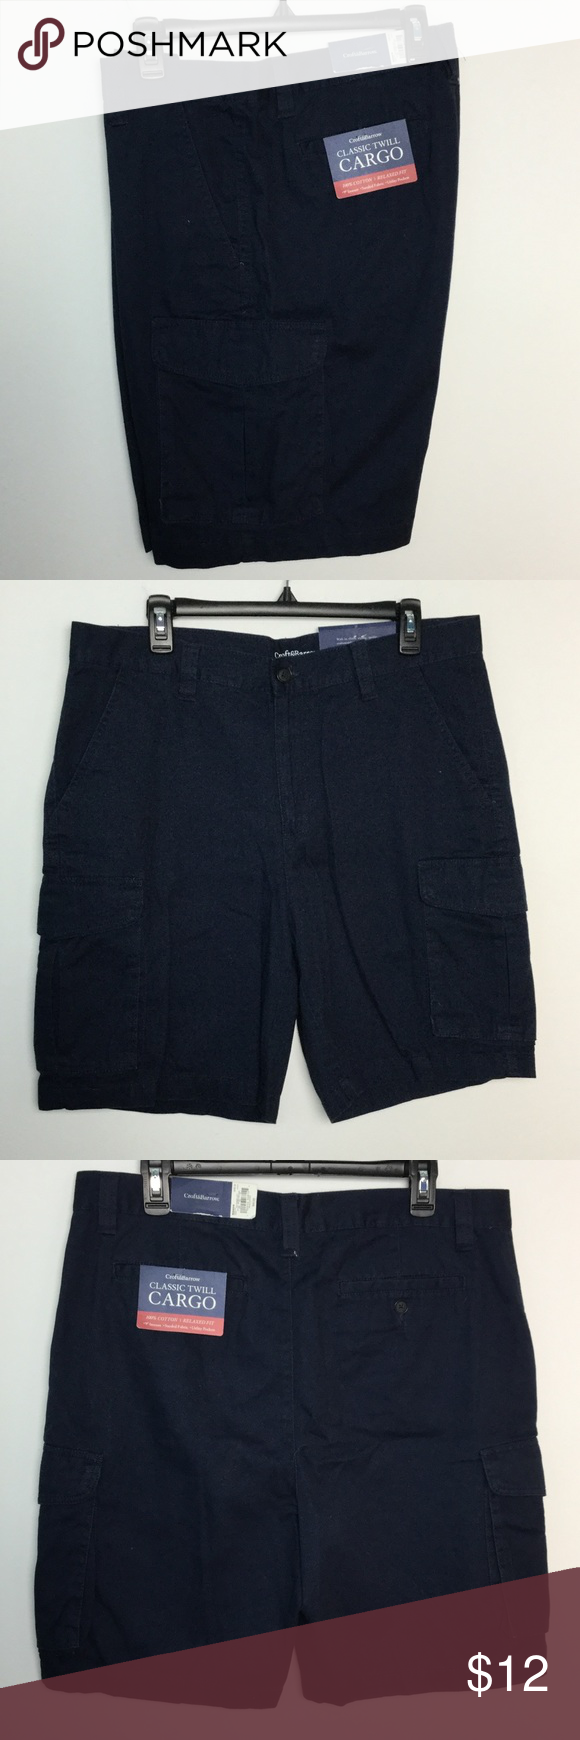 "Men's Croft & Barrow 32 Navy Blue Cargo Shorts NWT NWT new with tags retail price $40 Men's size 32 Croft & Barrow  Solid Navy Blue 6 pockets 9"" inch inseam cargo utility Carpenter  4 bin 14 croft & barrow Shorts Cargo"